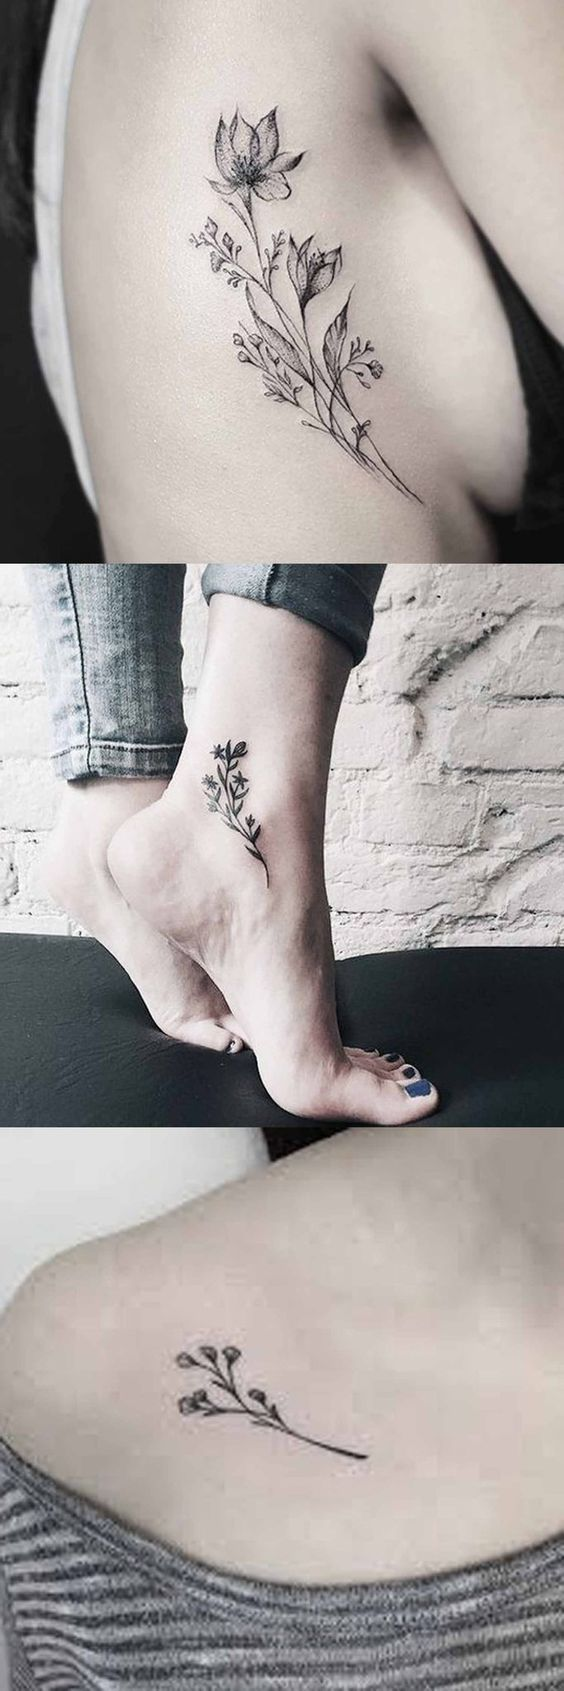 Vintage Wild Rose Tattoo Ideas for Women - Flower Ankle Foot Tatt - Traditional Black and White Floral Shoulder Tat at MyBodiArt.com